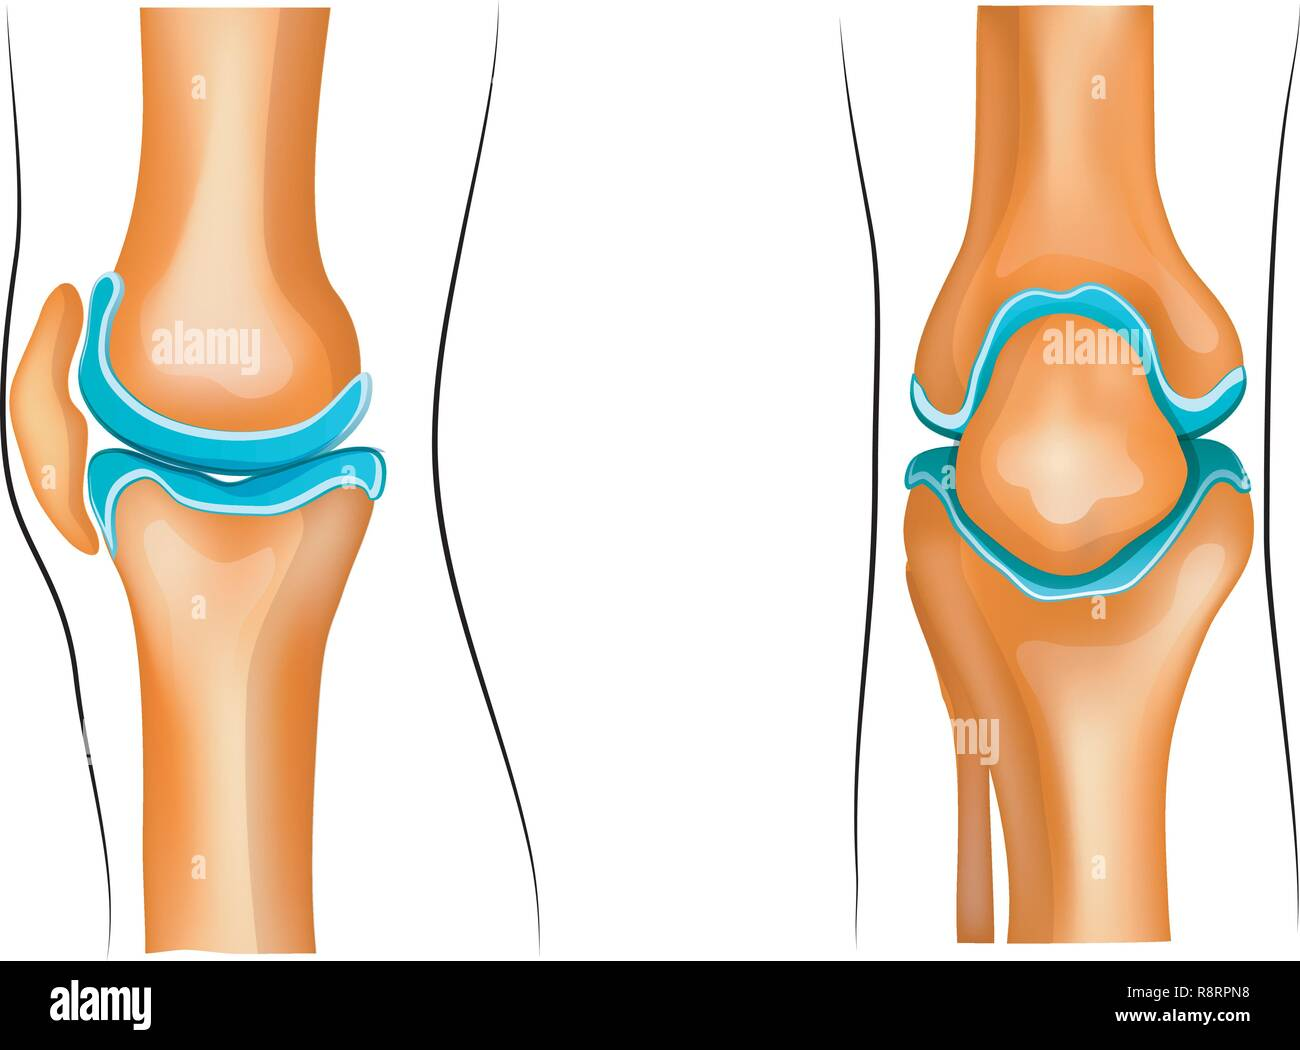 vector illustration of a healthy knee joint - Stock Image